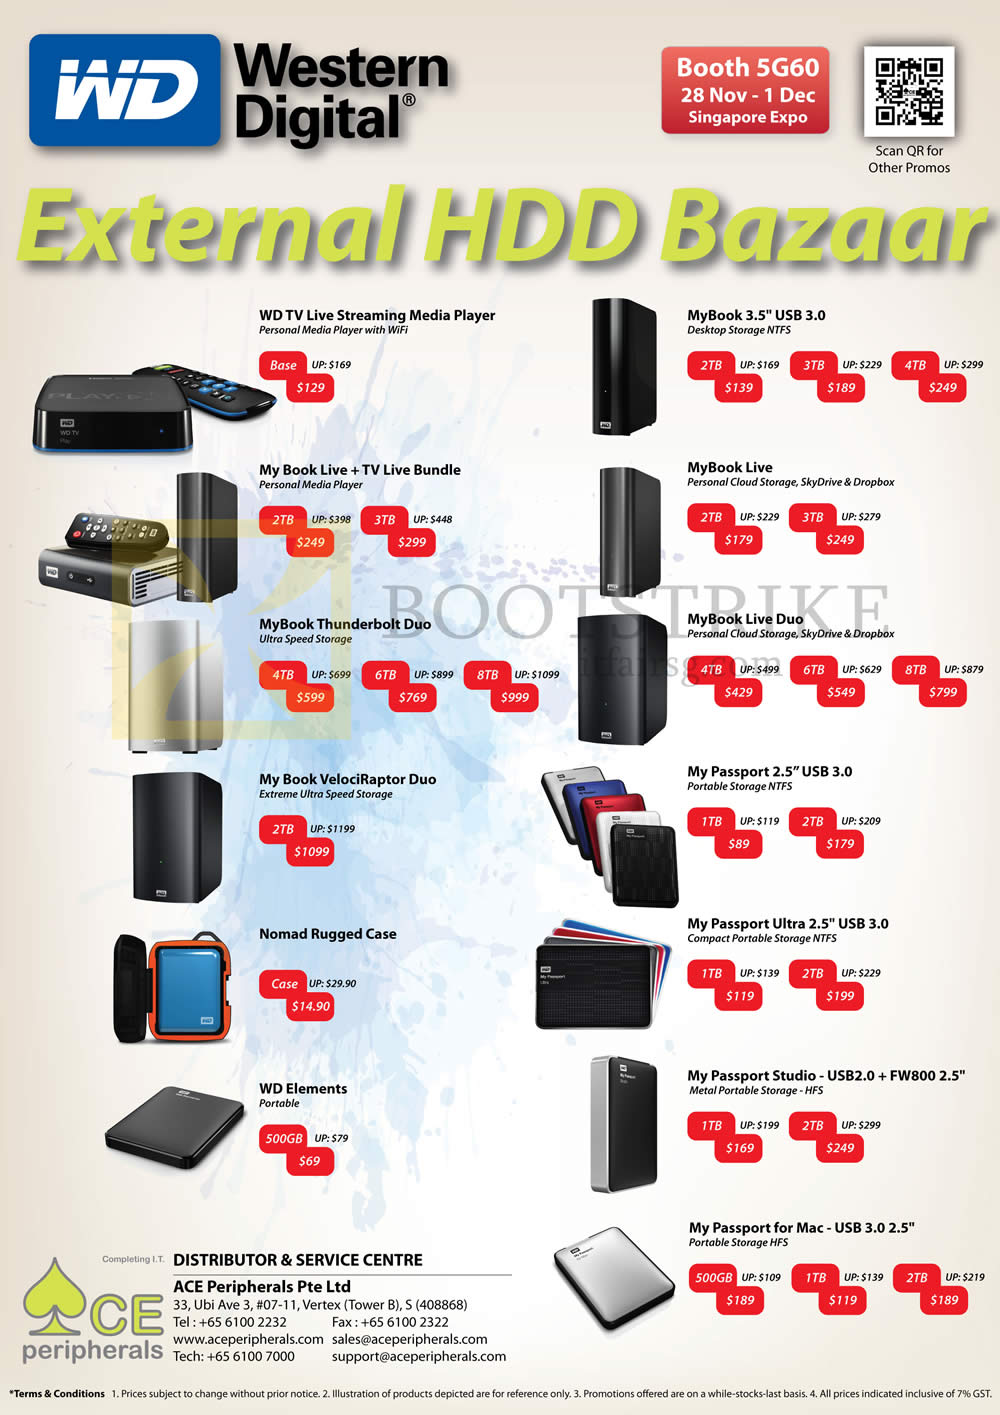 SITEX 2013 price list image brochure of Ace Peripherals Western Digital External Storage, My Book Live, Duo, Passport, TV Live Media Player, Thunderbolt, VelociRaptor, Nomad